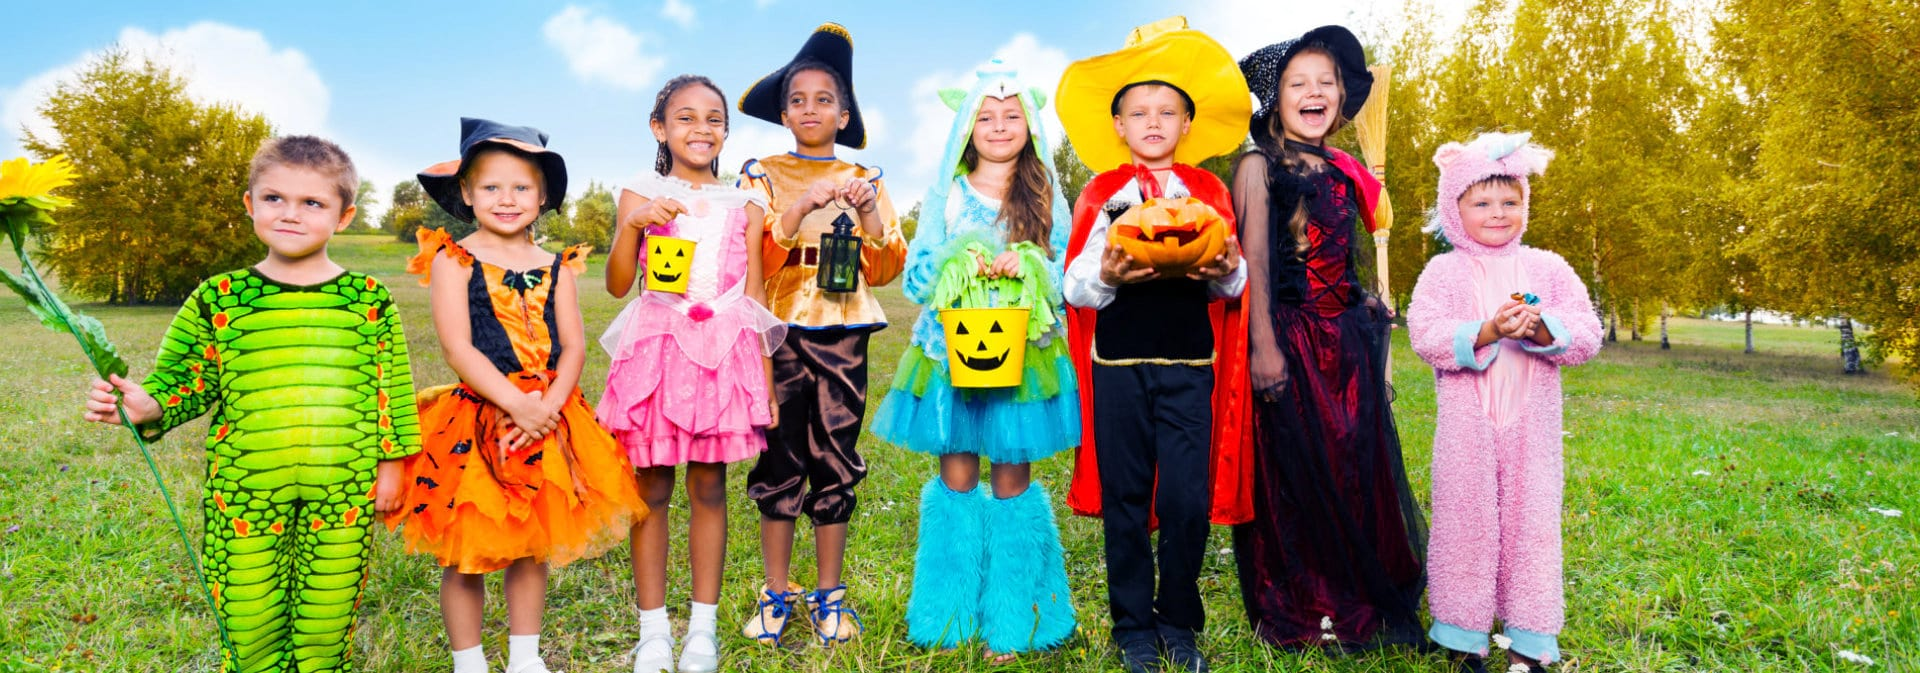 Group of children with their respective customes